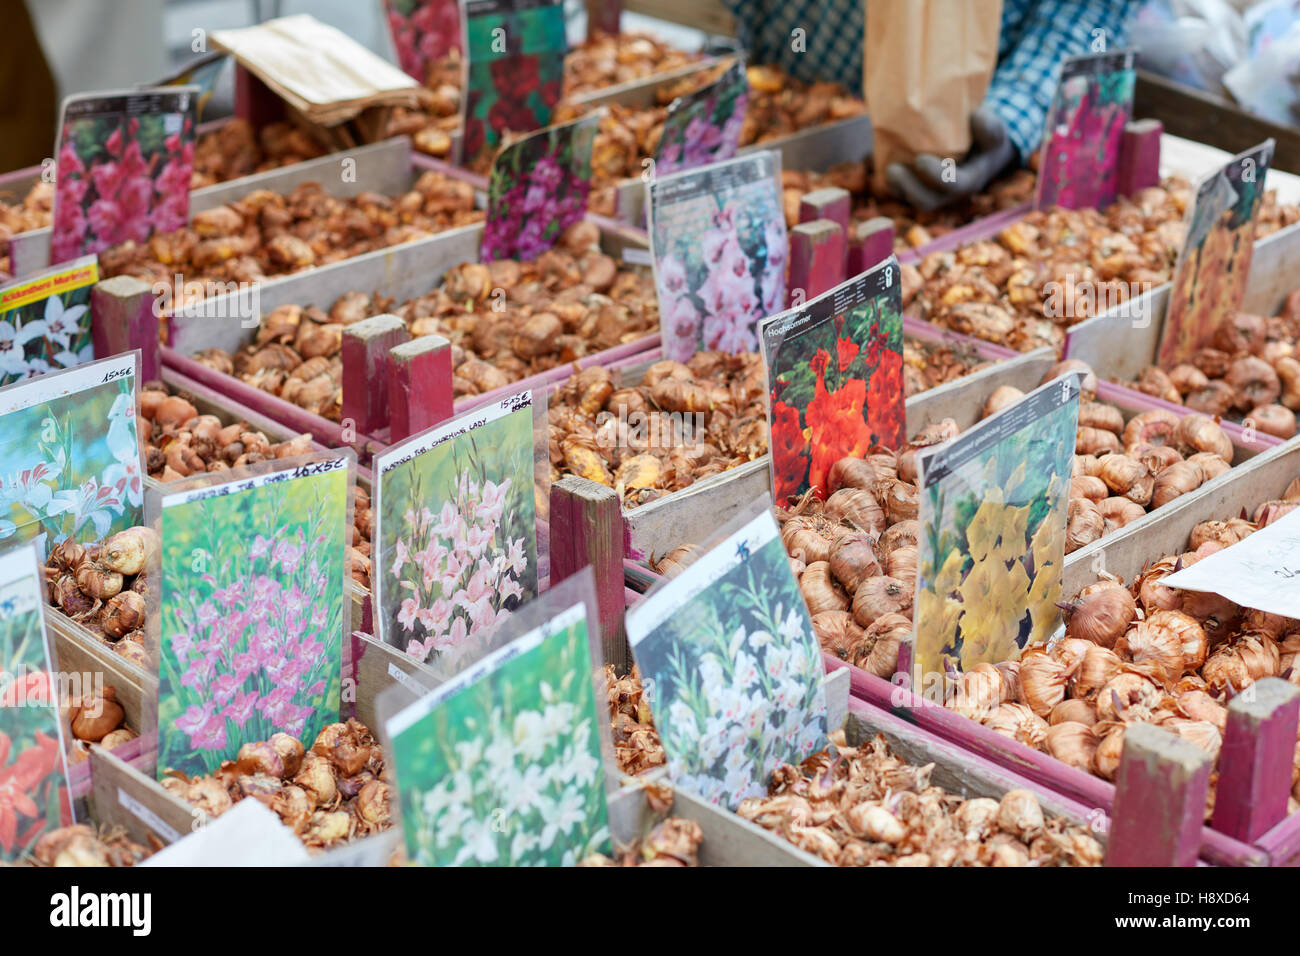 Flower bulbs on sale at Orticola fair in Milan, Italy. Orticola is an annual exhibition and fair of plants and flowers. Stock Photo